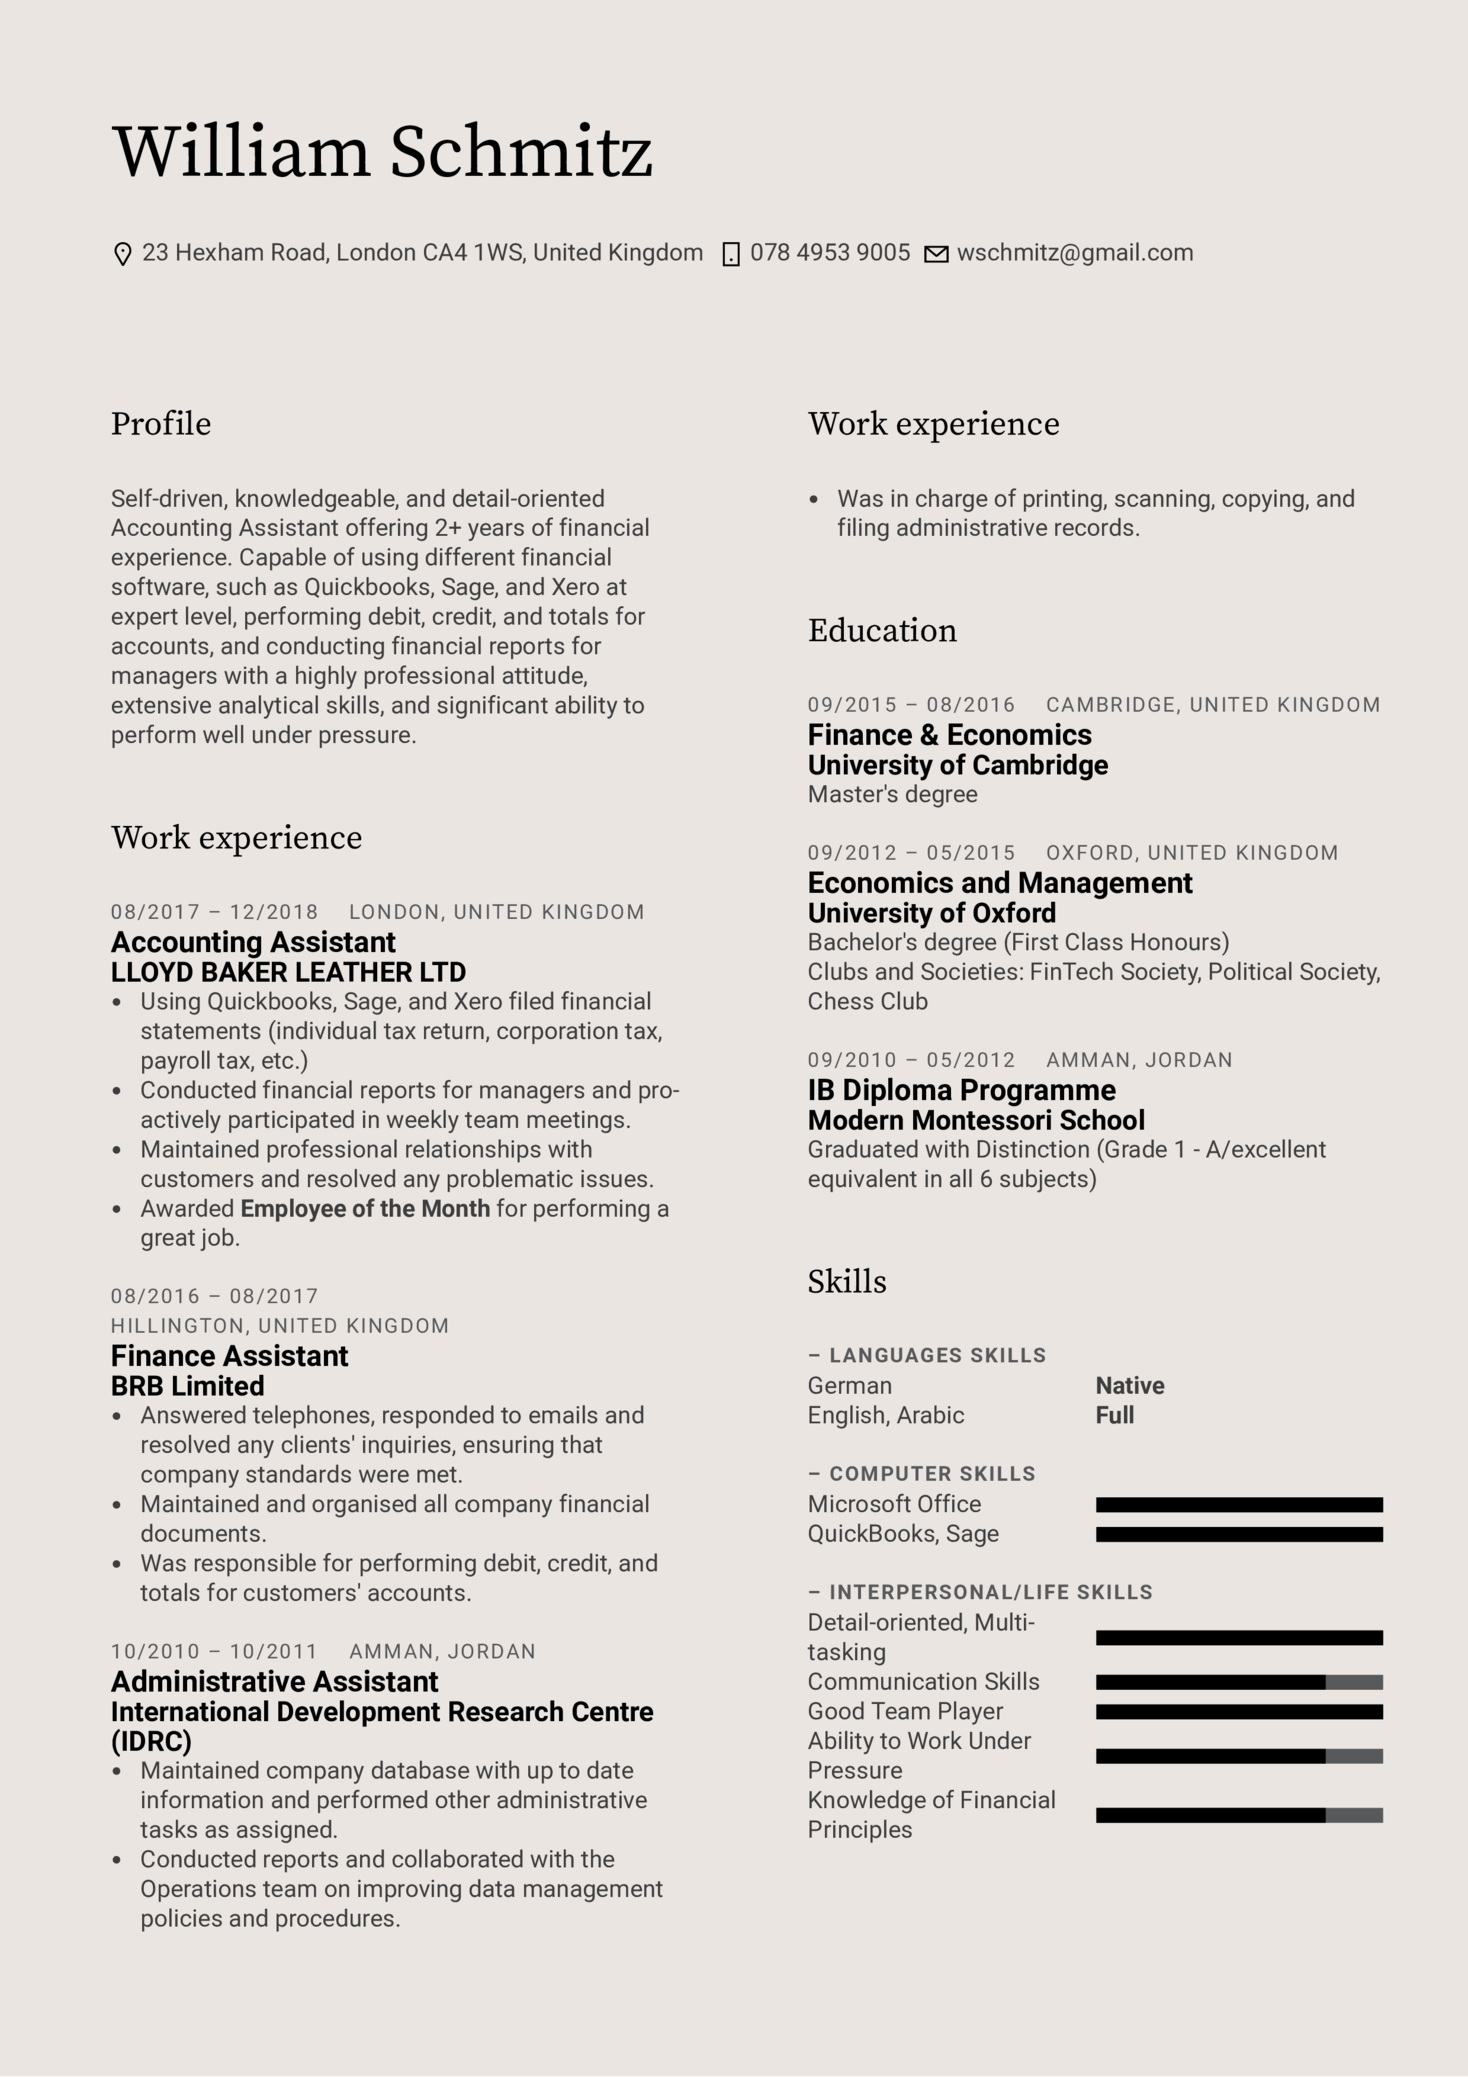 Accounting Assistant Resume Template (Part 1)